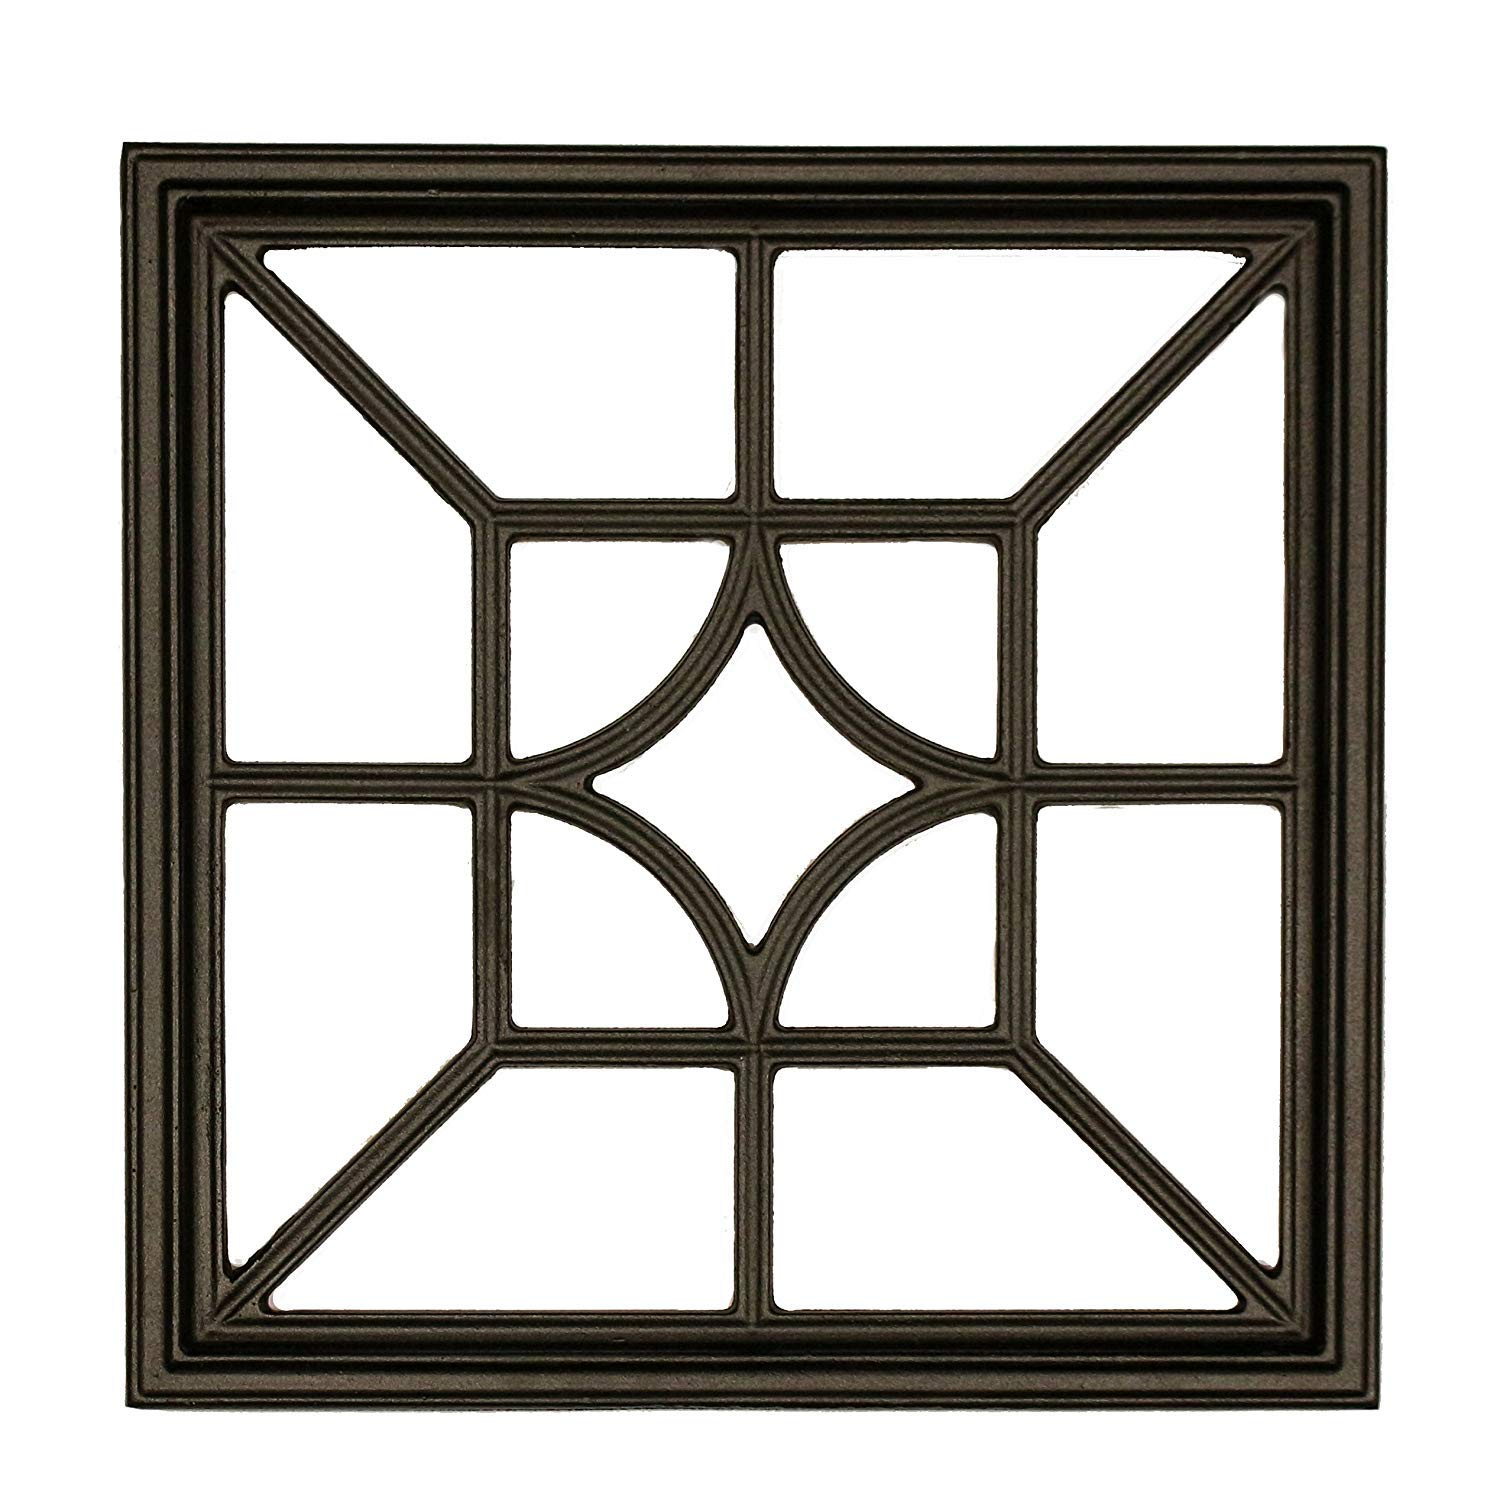 Nuvo Iron Square Decorative Insert For Fencing, Gates, Home, Garden, ACW54      by NUVO IRON